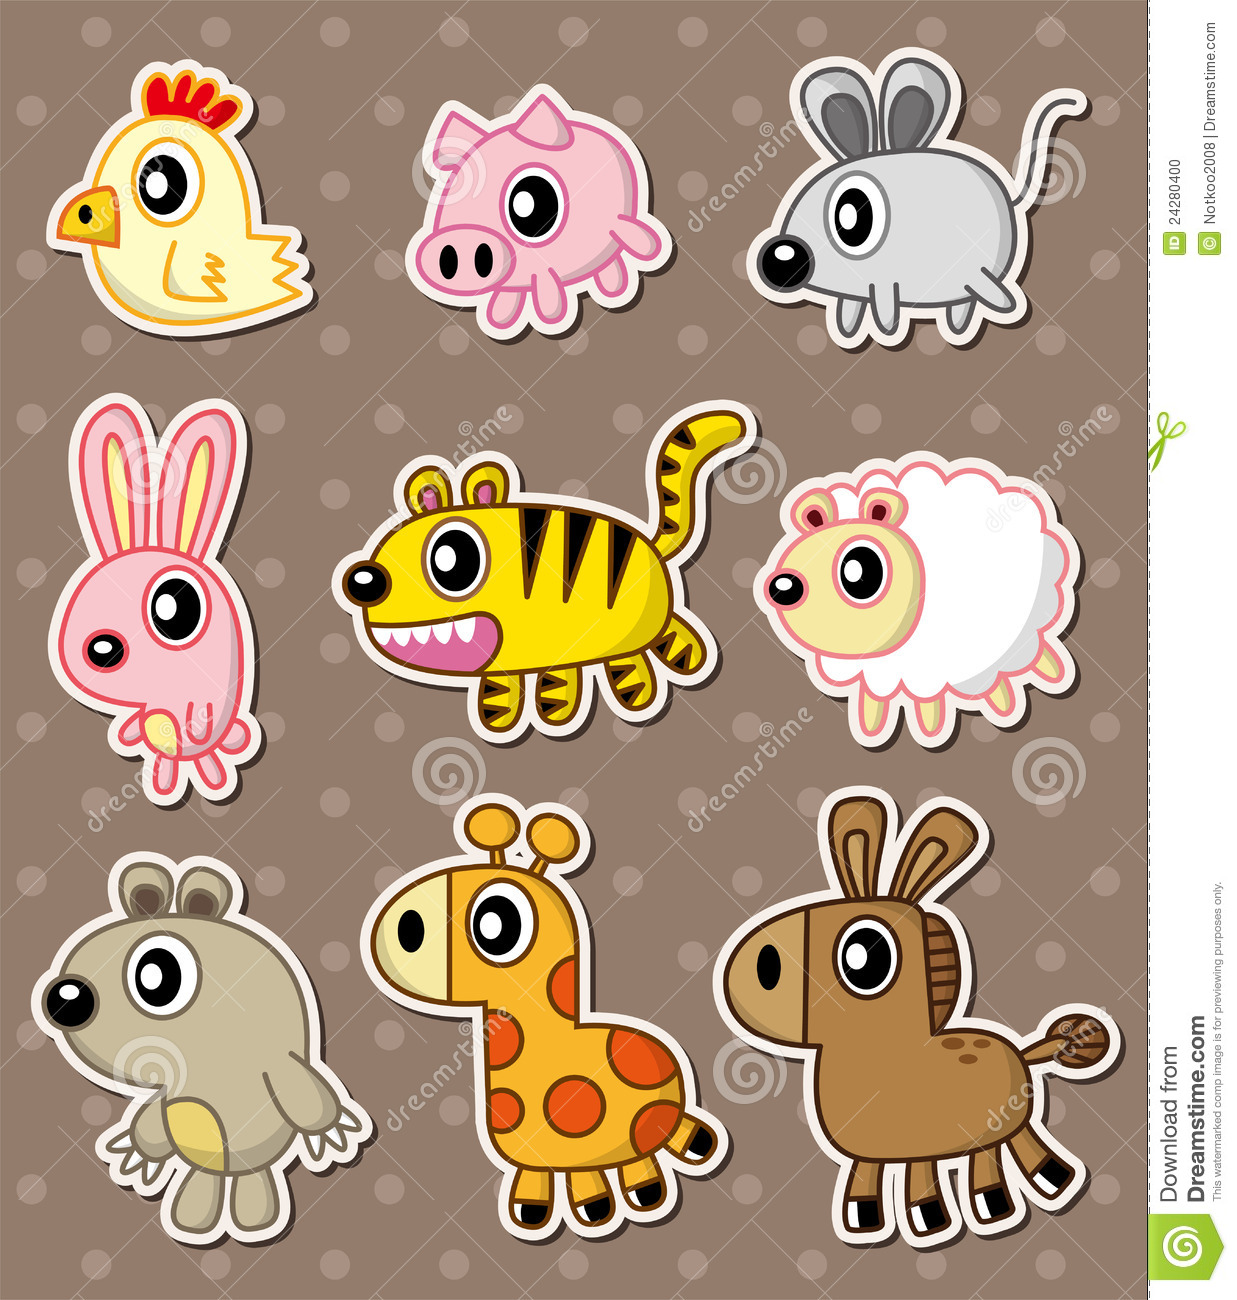 cartoon animal stickers in - photo #4